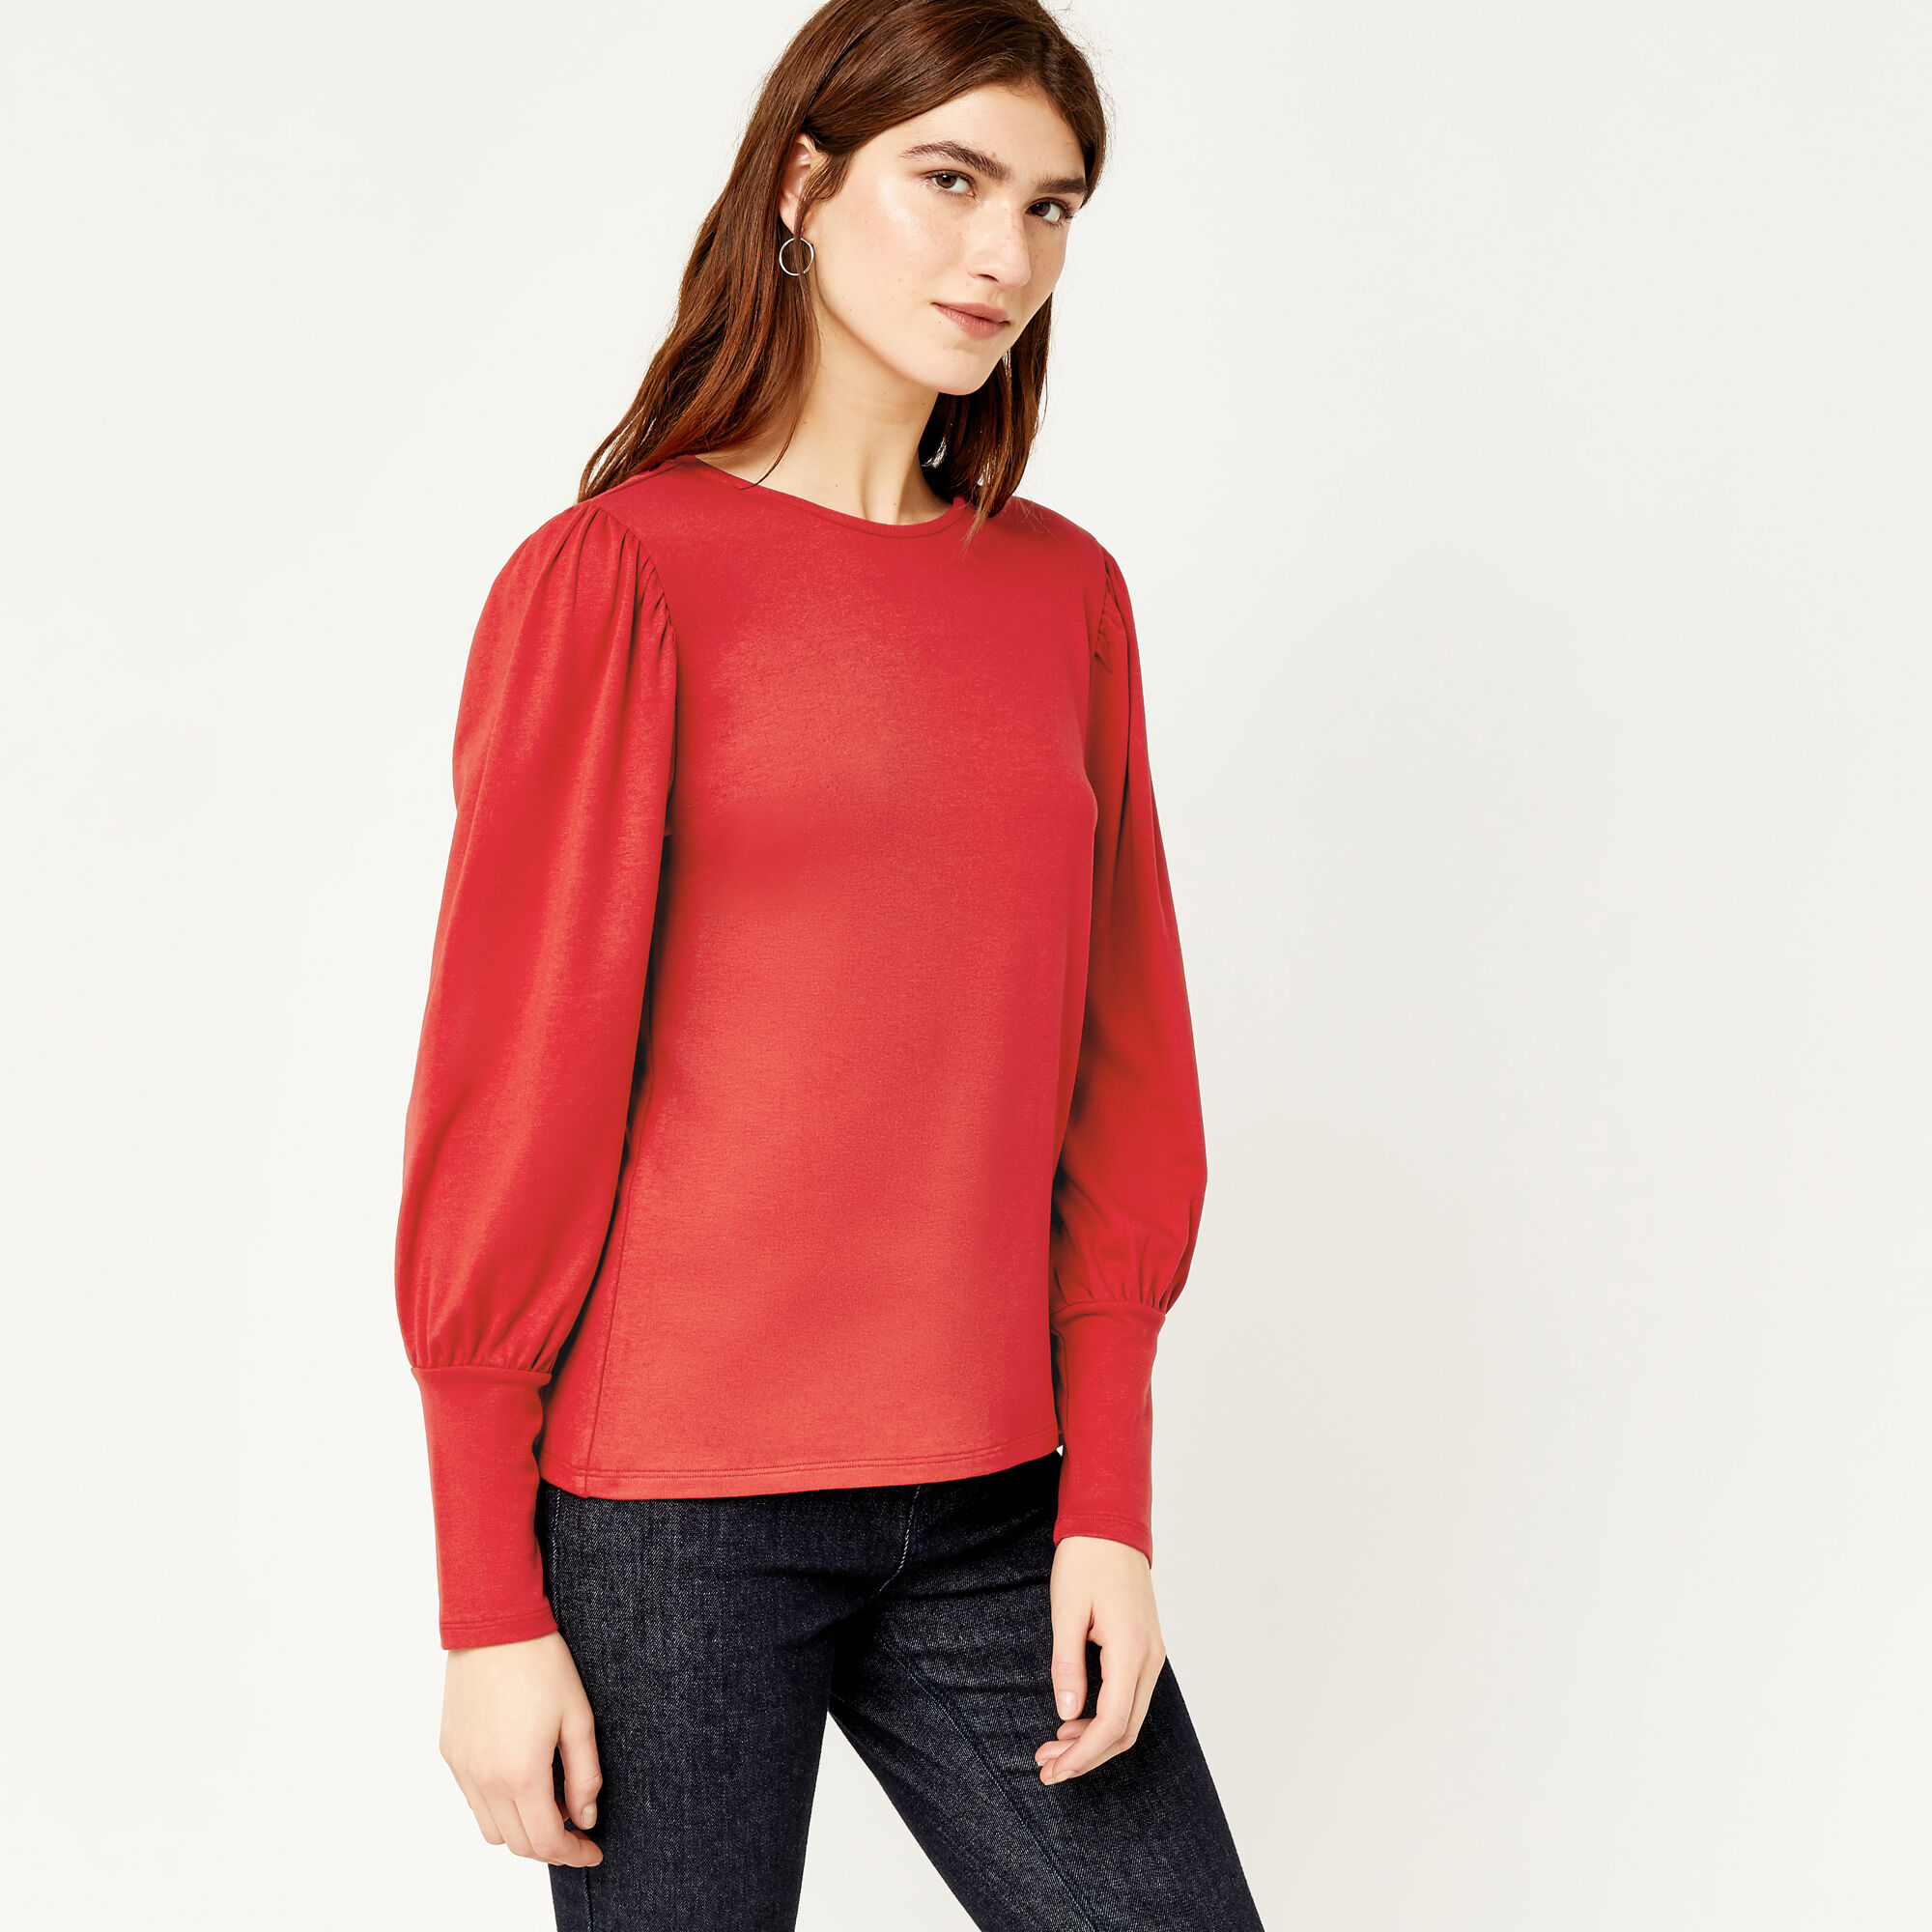 Warehouse, PUFF LONG SLEEVE TOP Bright Red 1